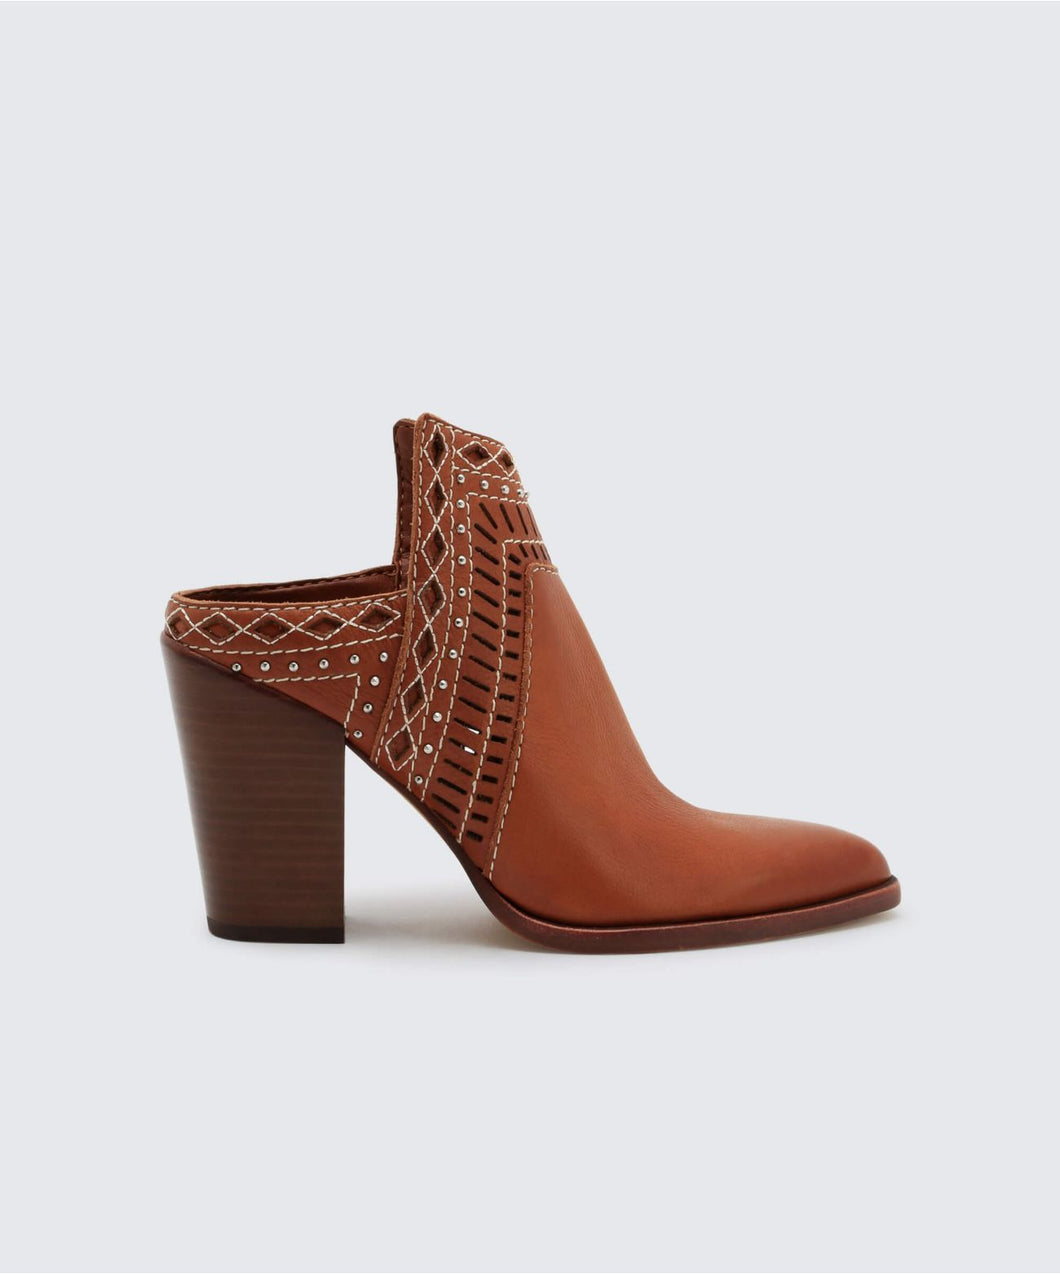 KHIA BOOTIES BROWN -   Dolce Vita